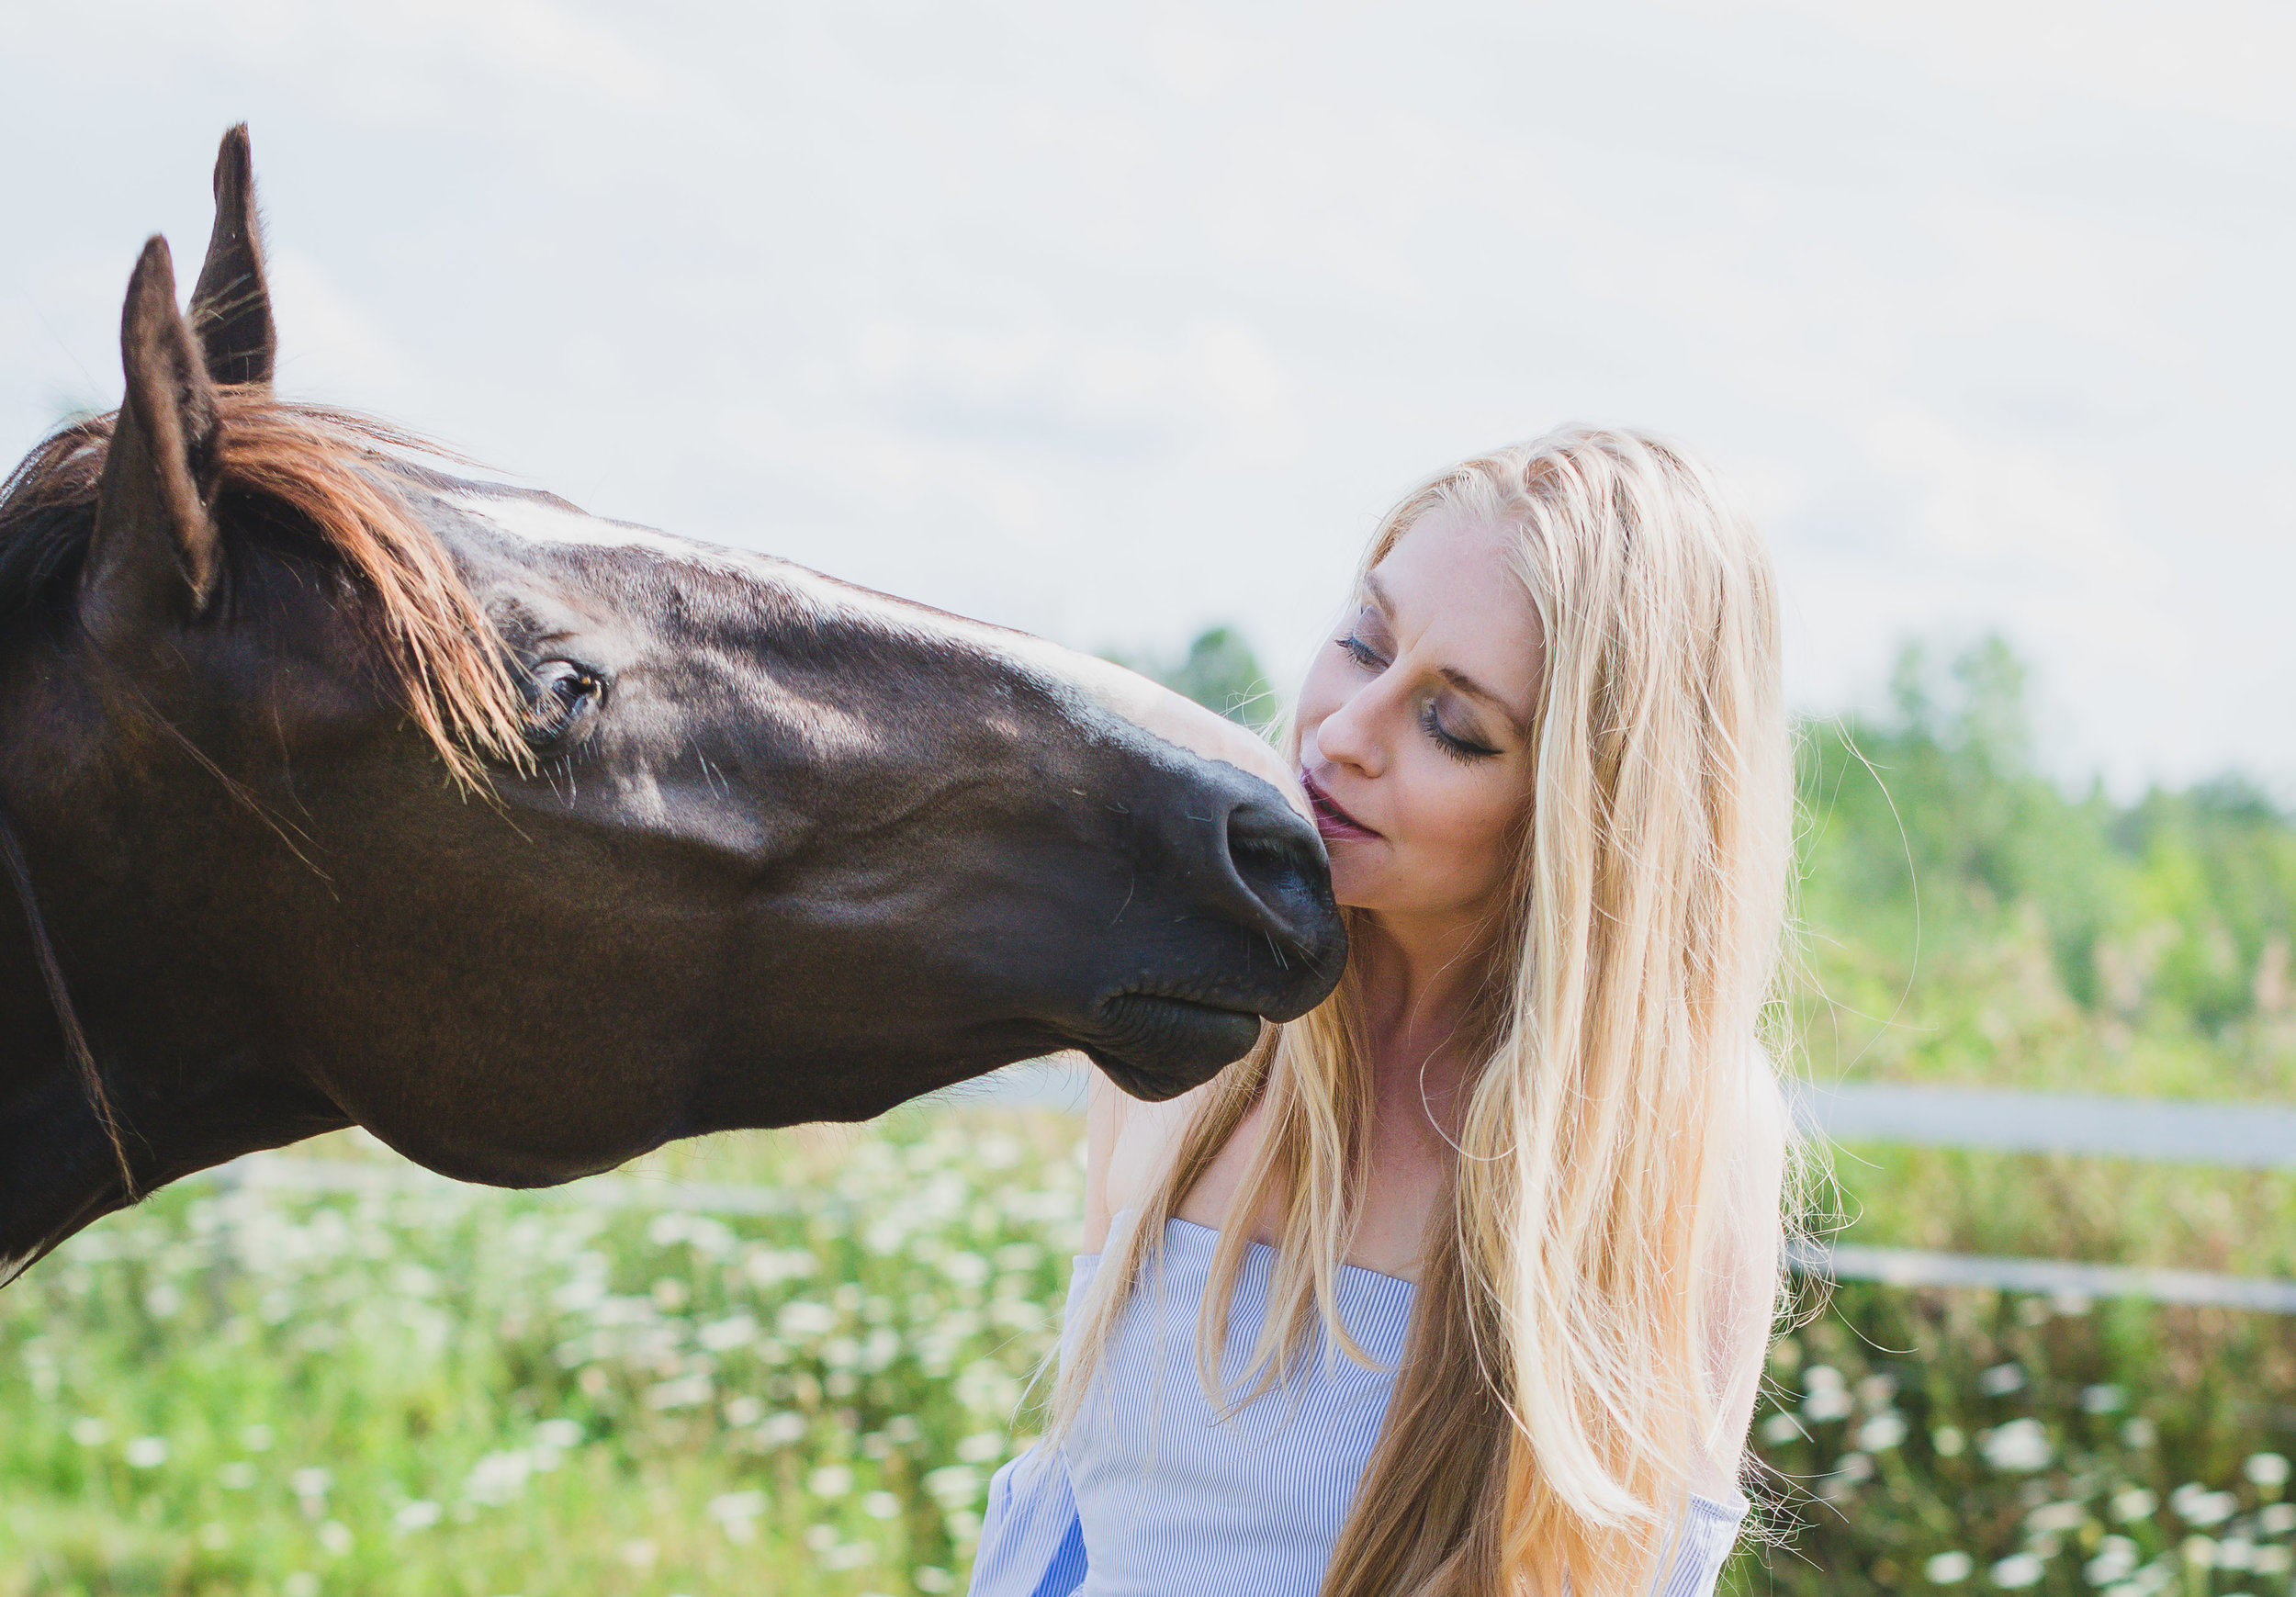 Shelly Burton, energy medicine woman, enjoying an intimate healing kiss from Pippy the horse.